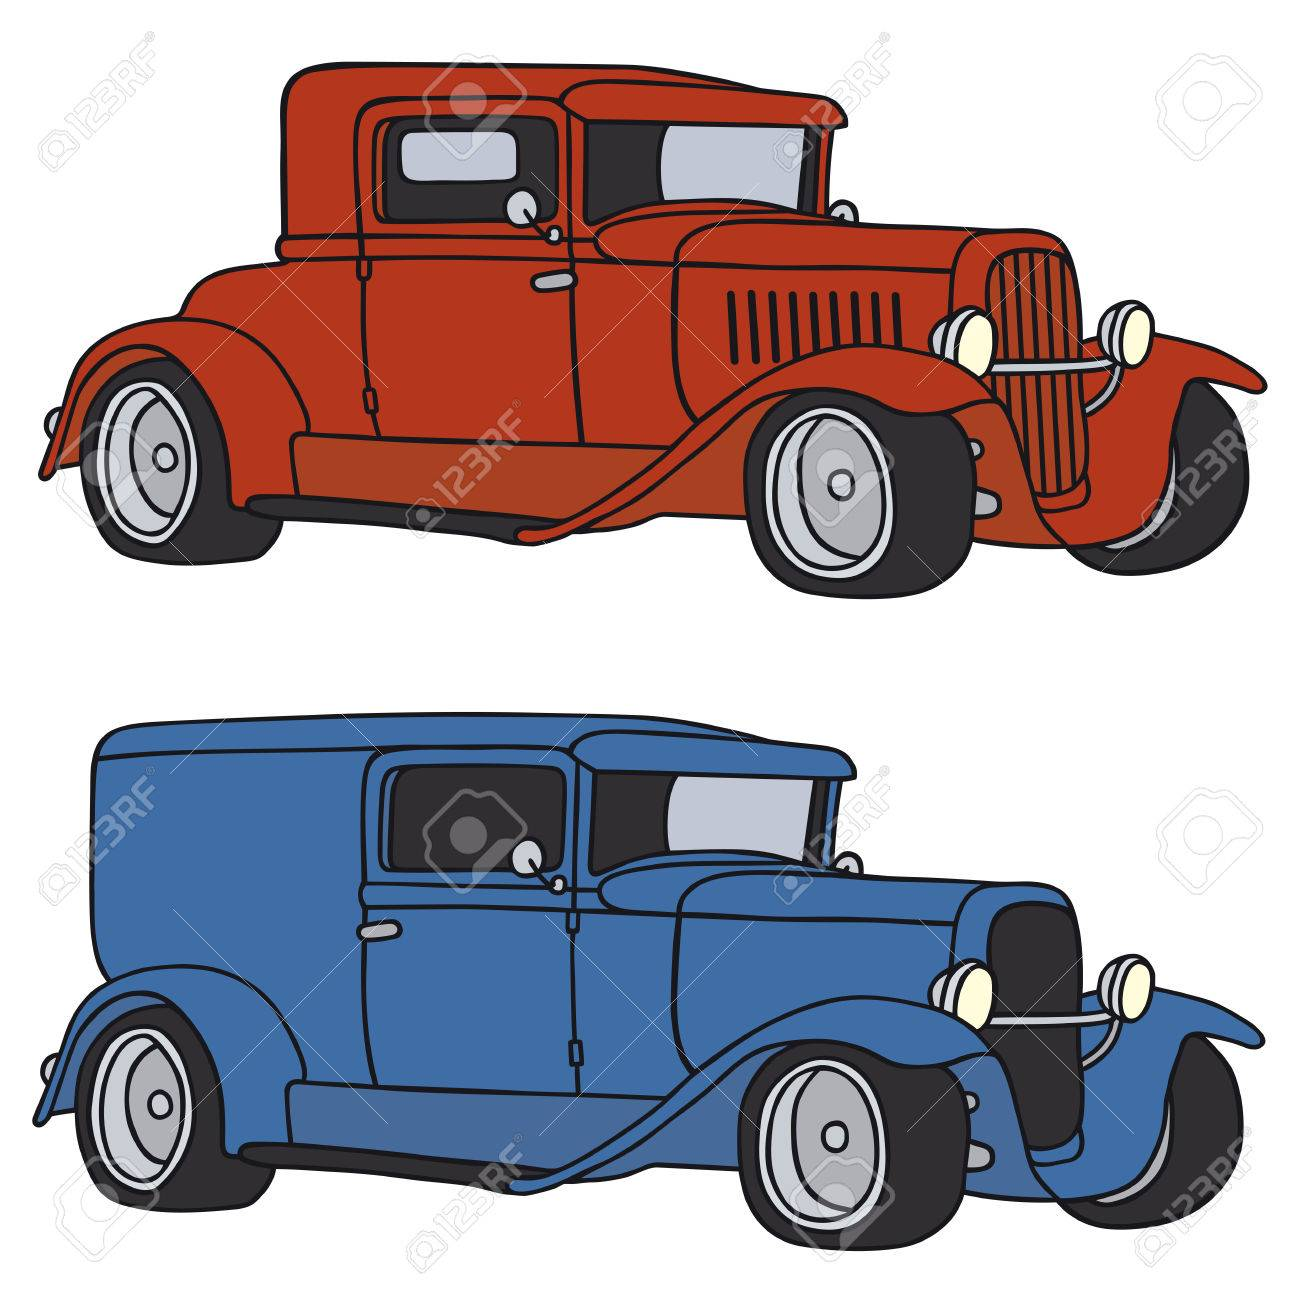 Hand Drawing Of Two Funny Vintage Cars - Any Real Types Royalty Free ...